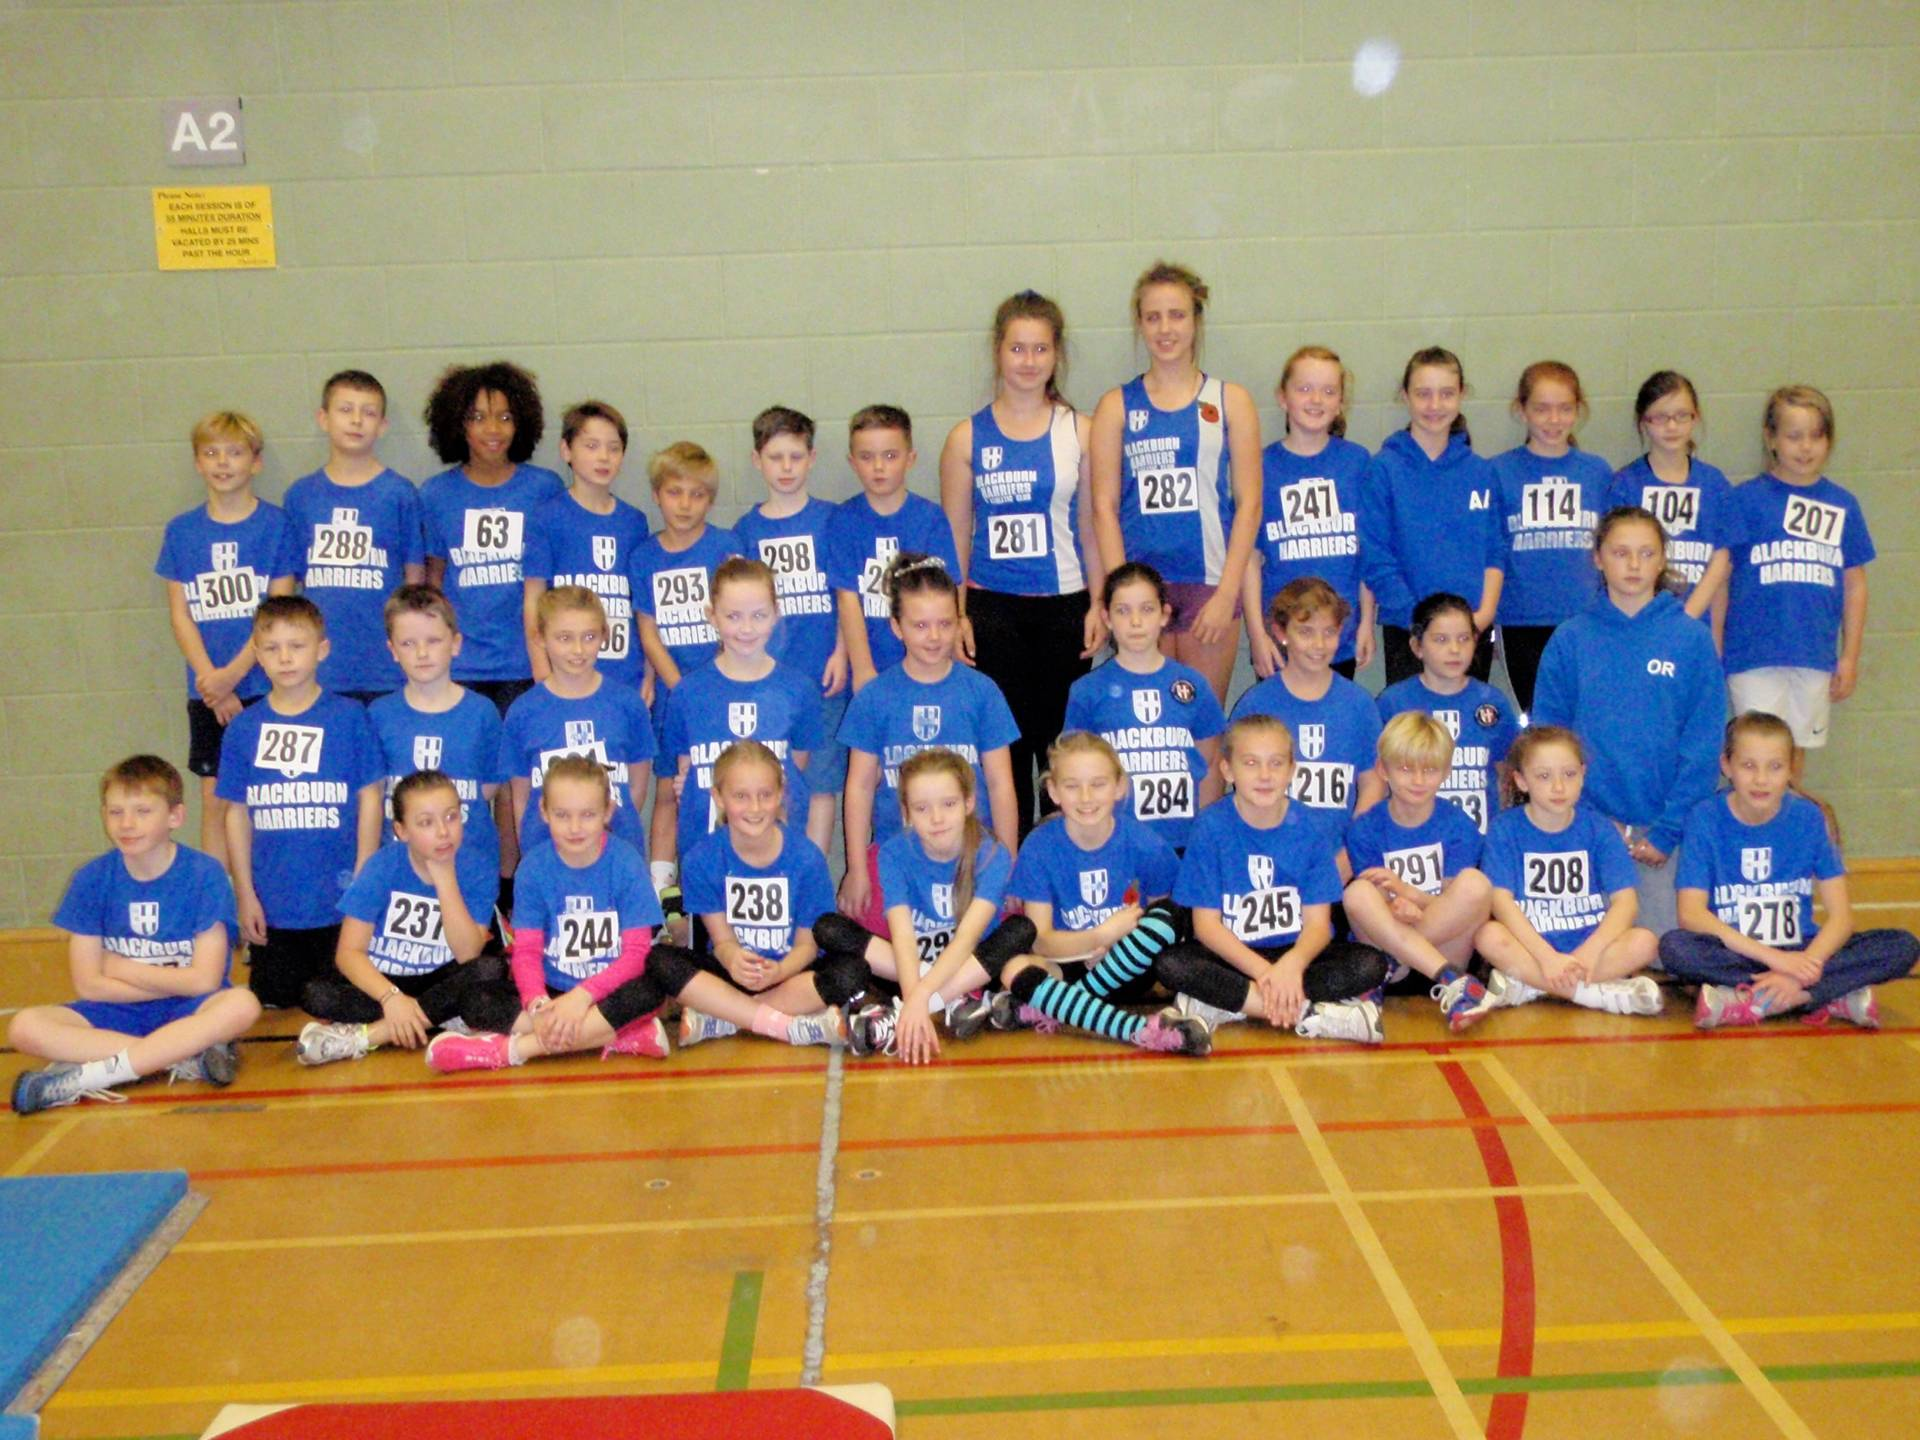 Harriers youngsters shine at Blackpool Sportshall……